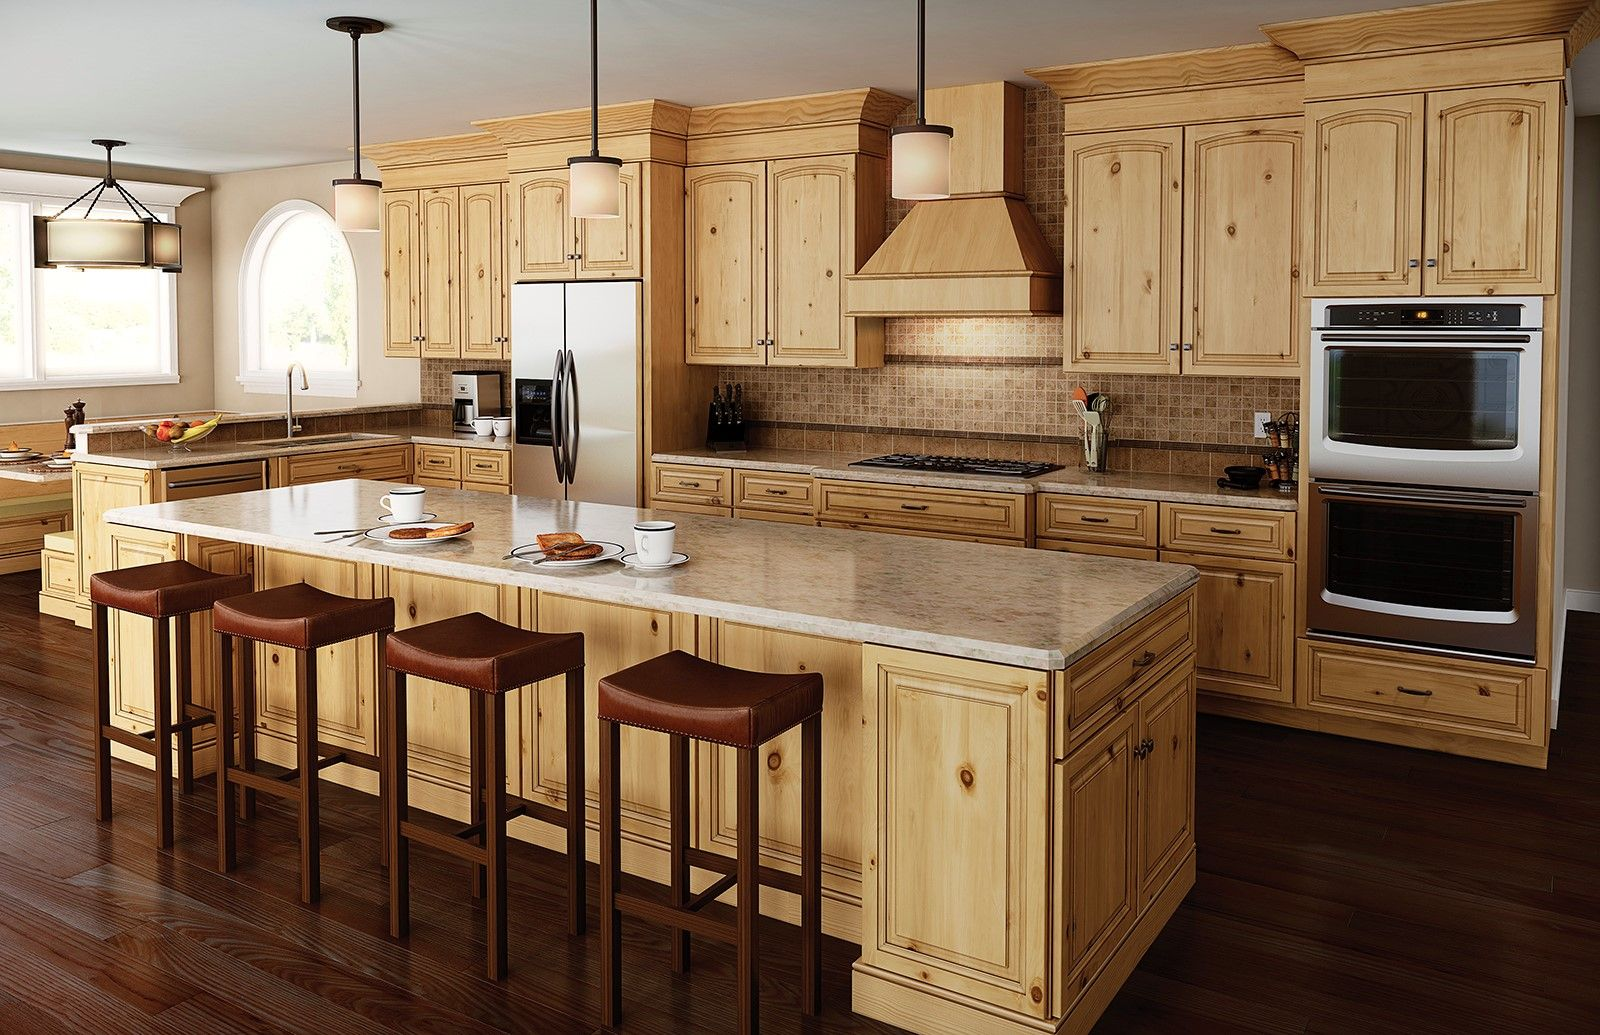 Wonderful Images Of Kitchen Cabinets In Natural Rustic Birch   Google Search